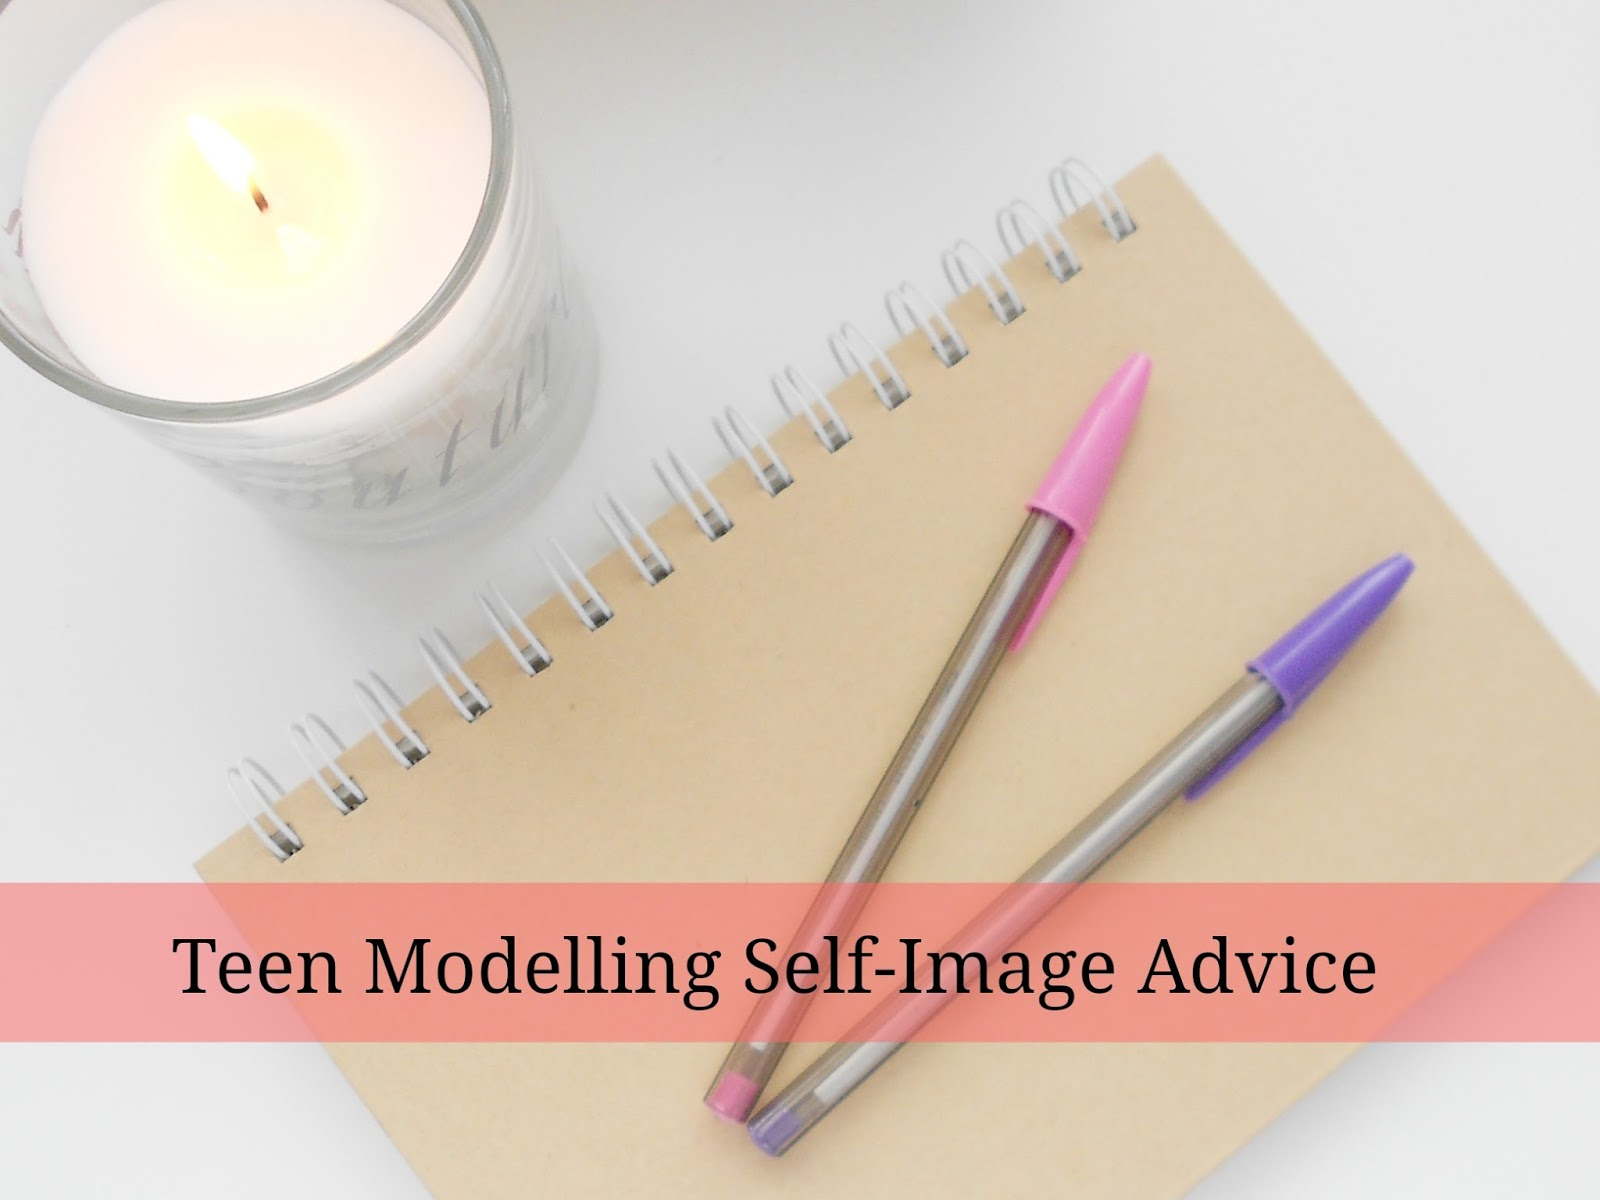 Teen Modelling Self-Image Advice